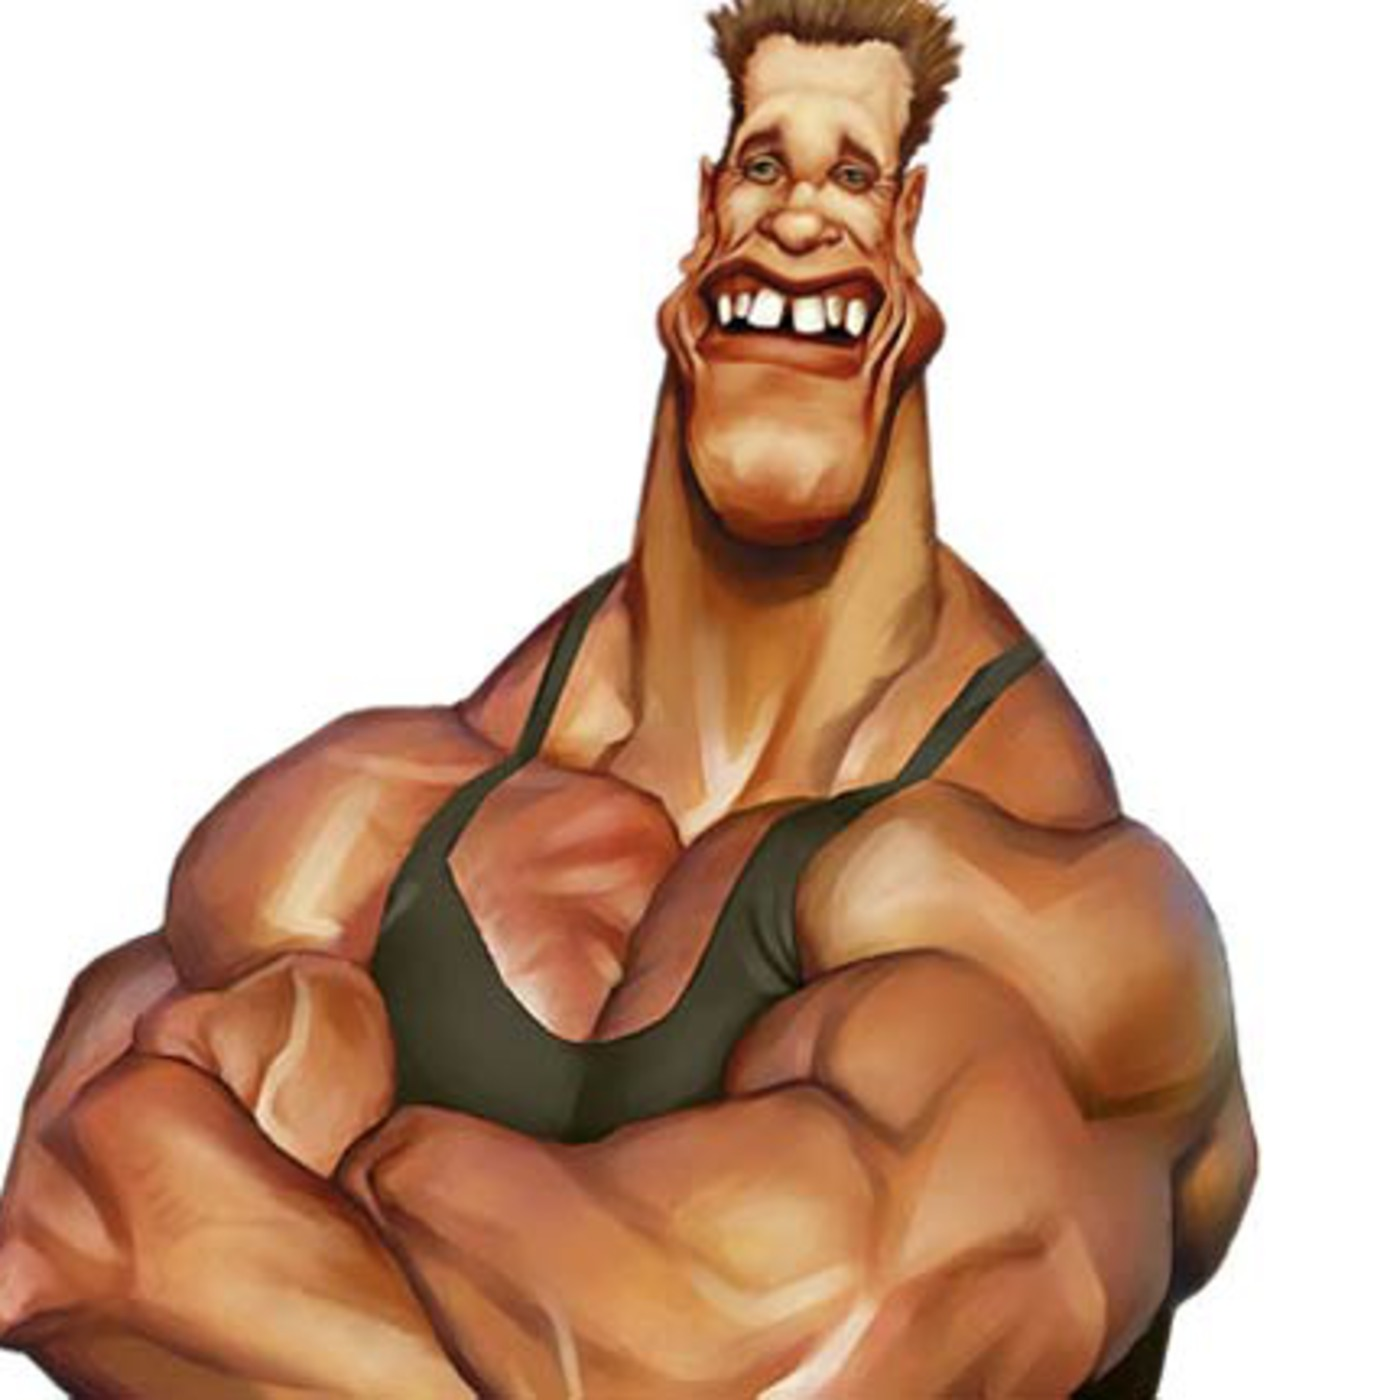 Sexy bodybuilder cartoon naked naked photo